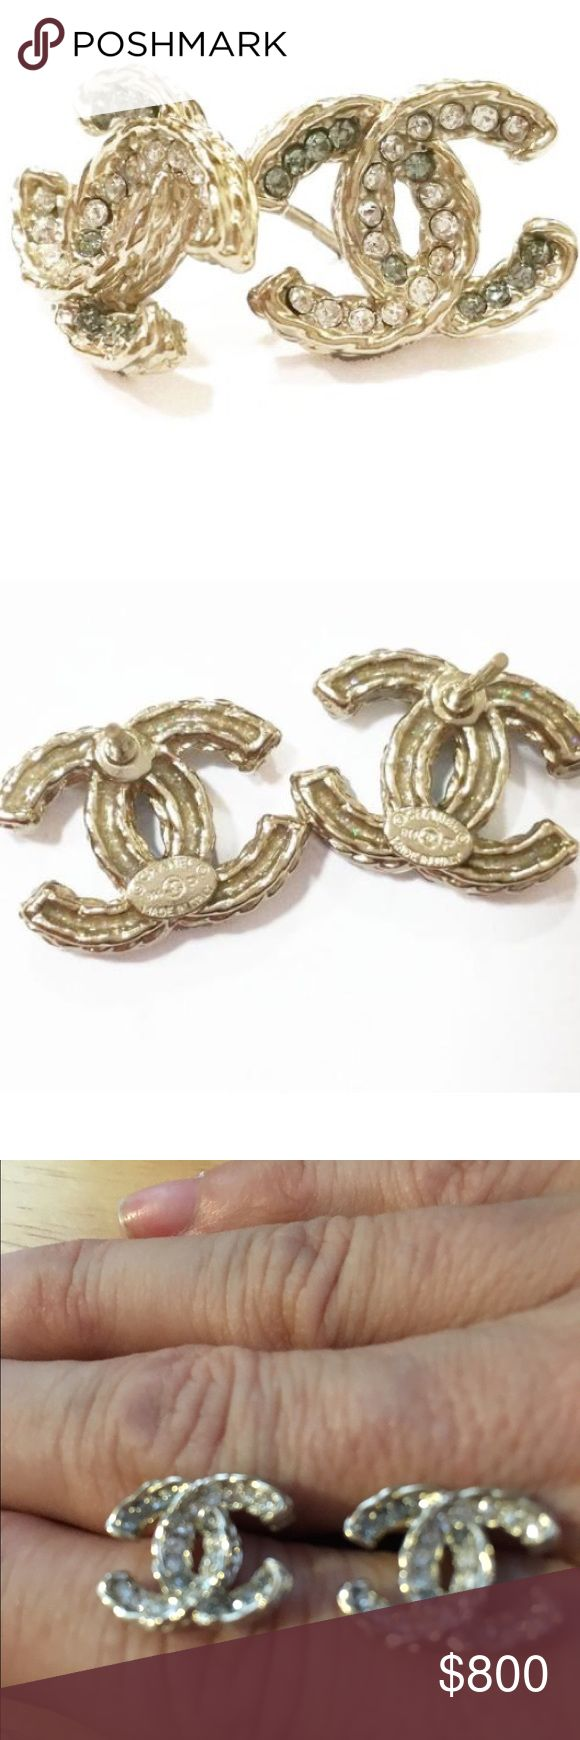 Authentic Chanel Twisted CC Rhinestone Earrings Authentic Chanel Gold Twisted CC Rhinestone Pierced Earrings. *Marked 13 *Made In France *Chanel. Purchased from Lar Vintage. Still in business. 12/5/15. RARE OUT IF STOCKComes with Chanel Bag CHANEL Jewelry Earrings